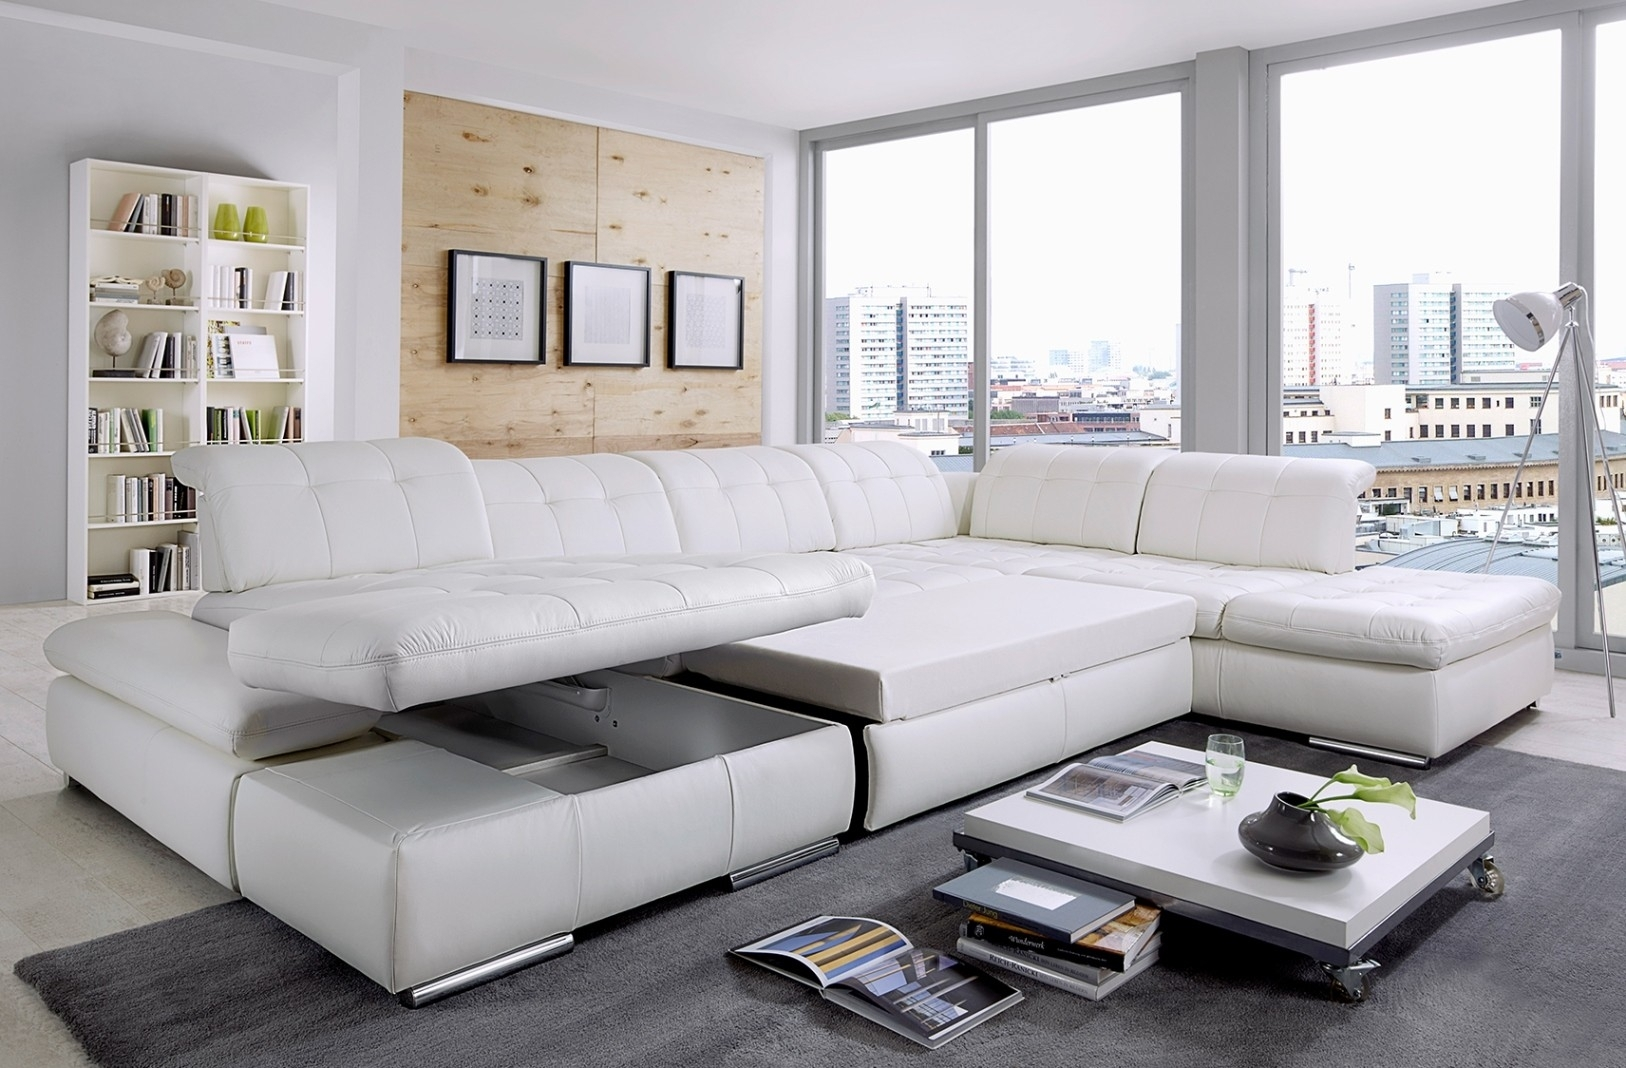 10 inspirations nh sectional sofas sofa ideas. Black Bedroom Furniture Sets. Home Design Ideas